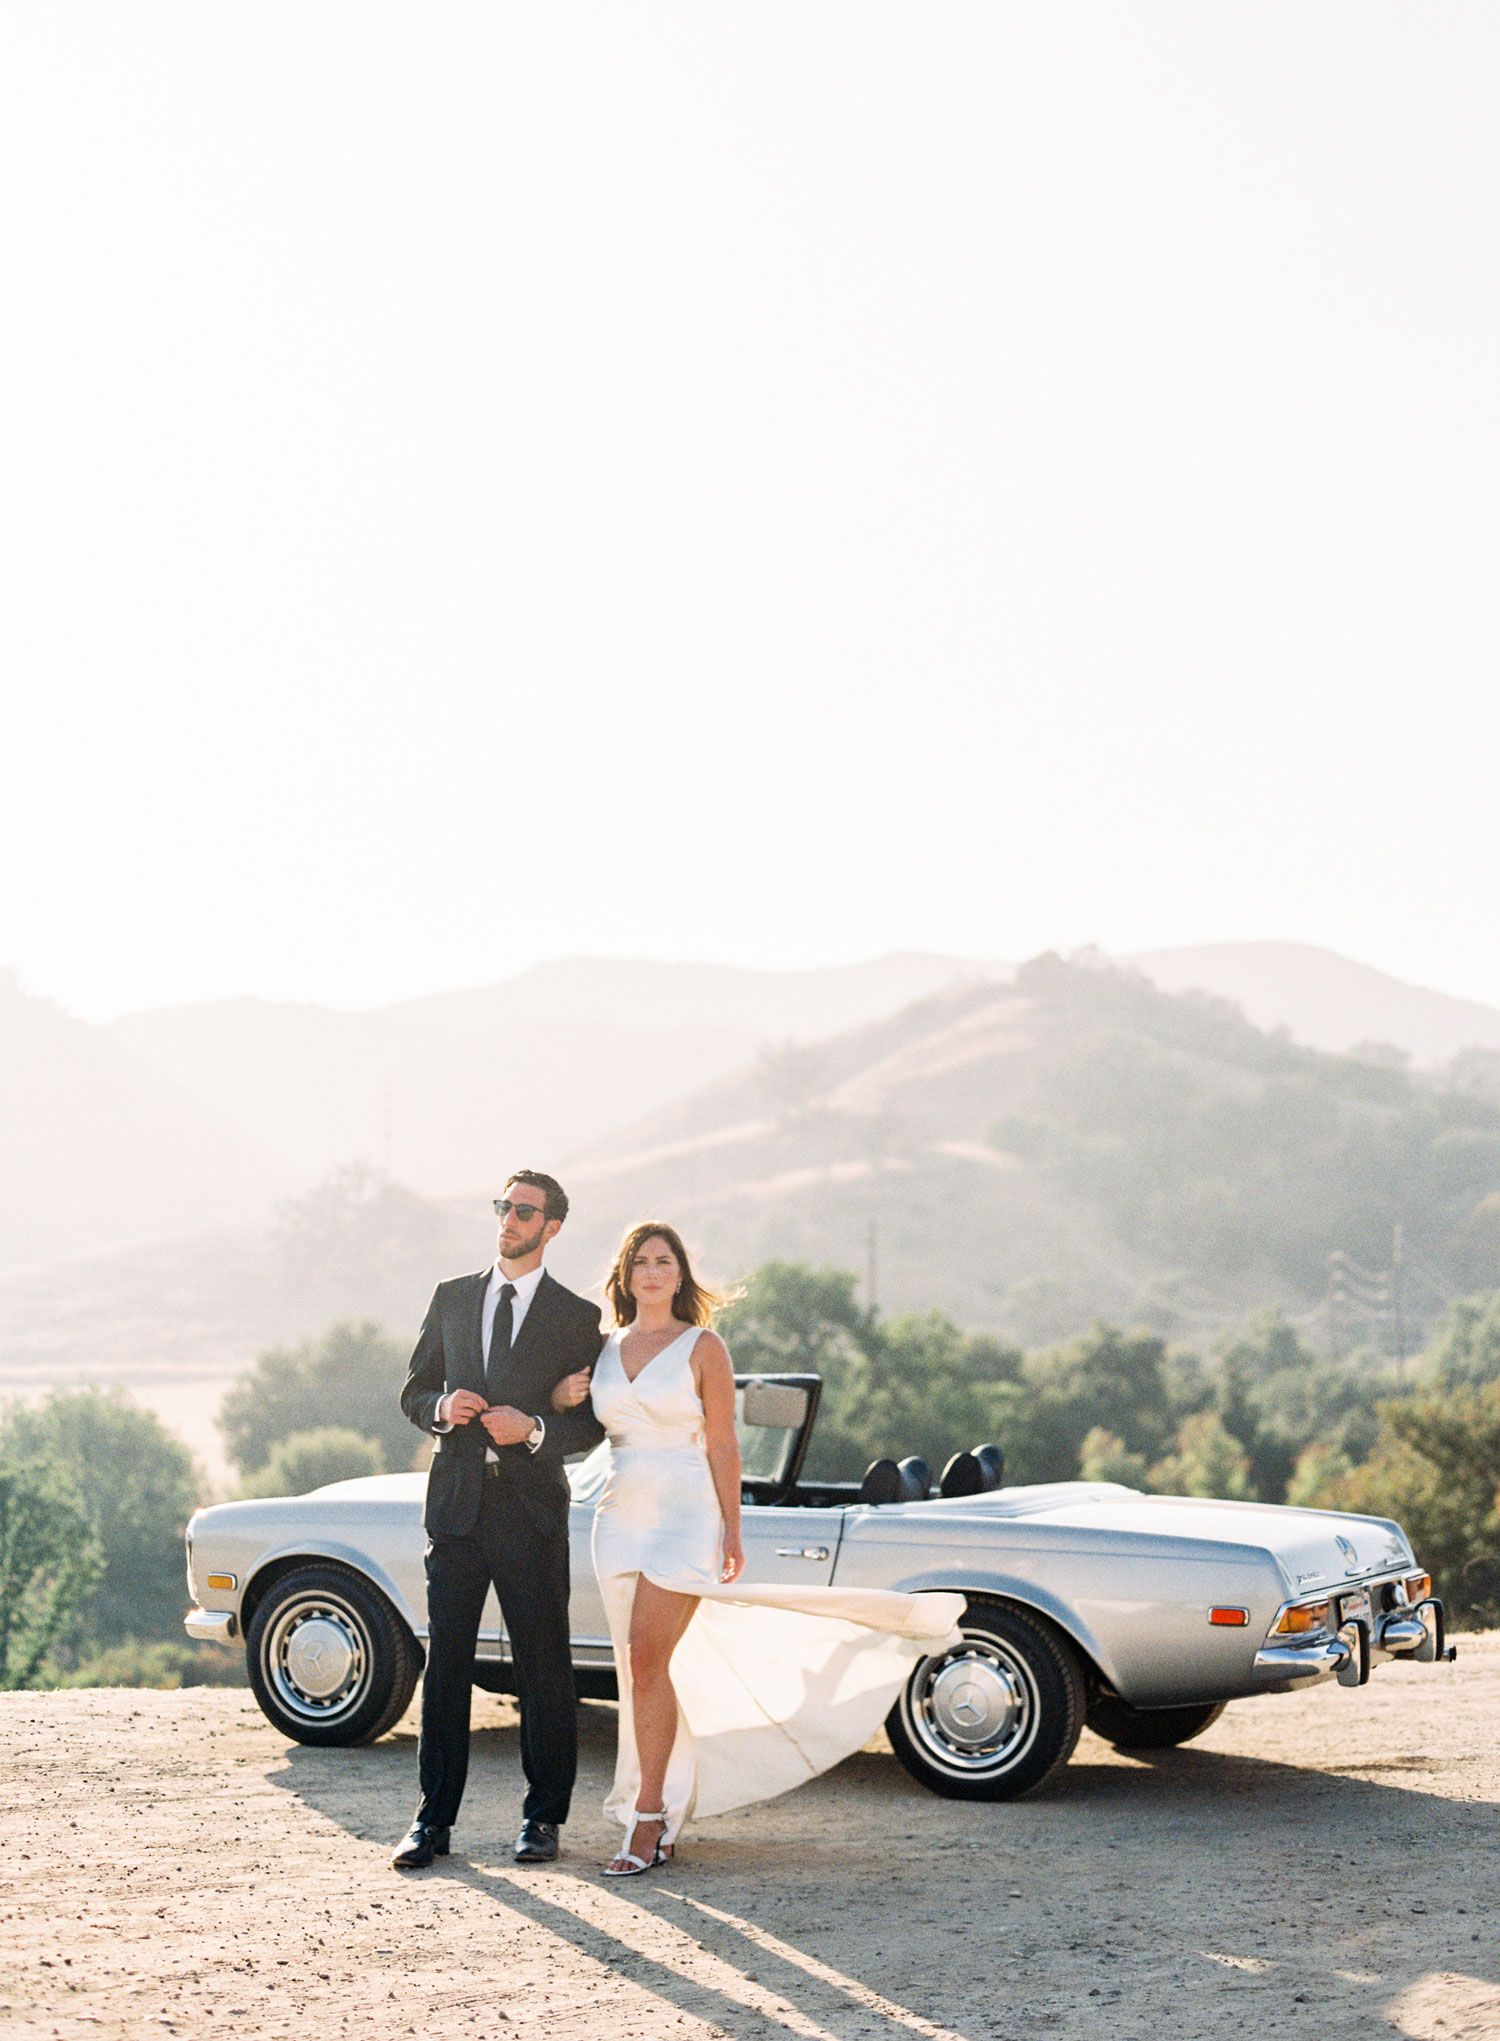 A Classic Summer Engagement Shoot in Southern California